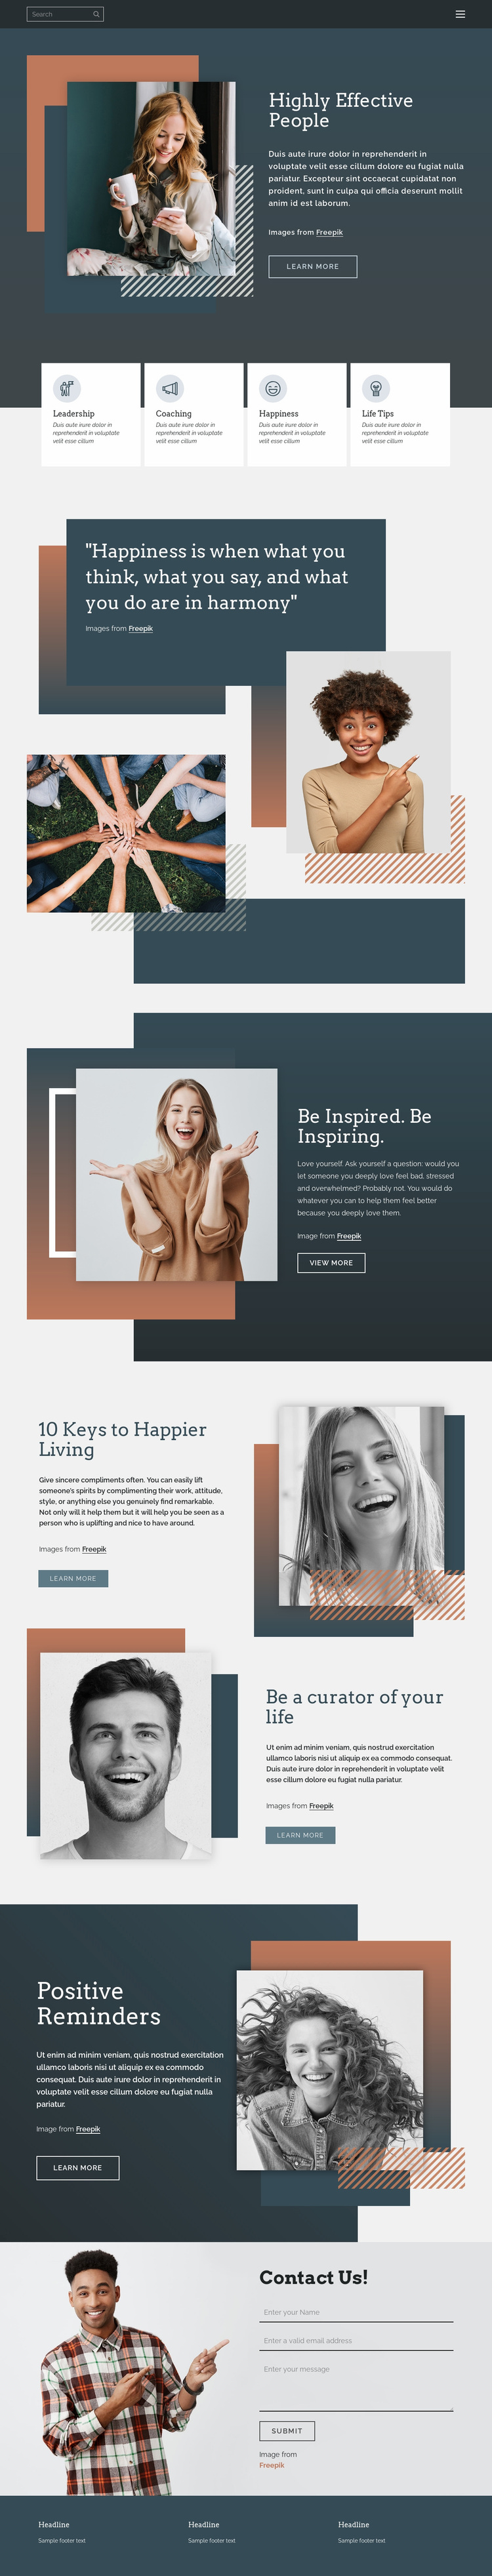 How to be successful in life Website Design